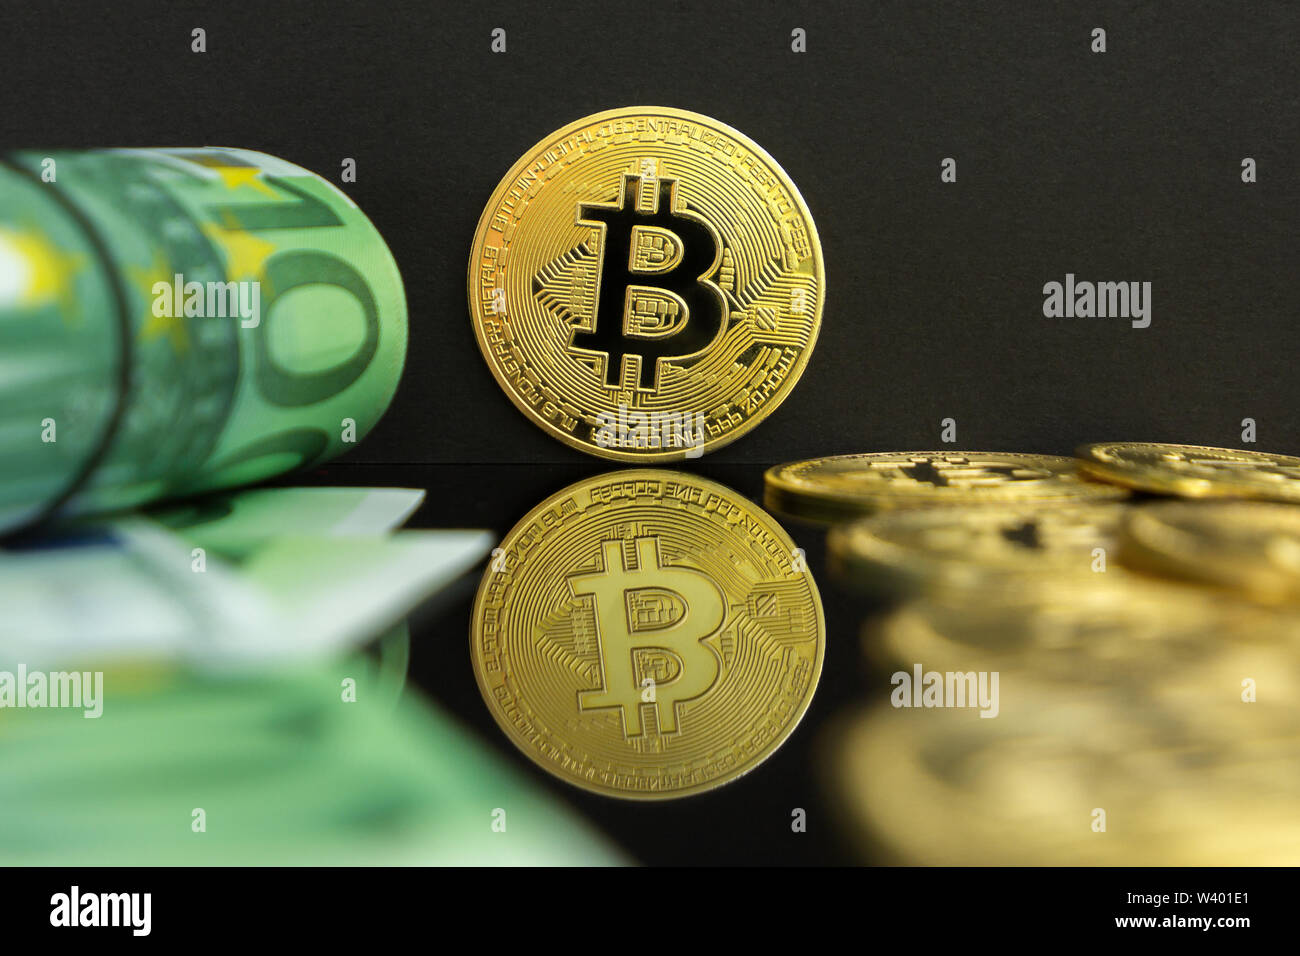 Euro vs bitcoin cryptocurrency. There are one hundred euro banknotes and big golden btc coins on a black background. Golden bitcoin over Euro money. - Stock Image